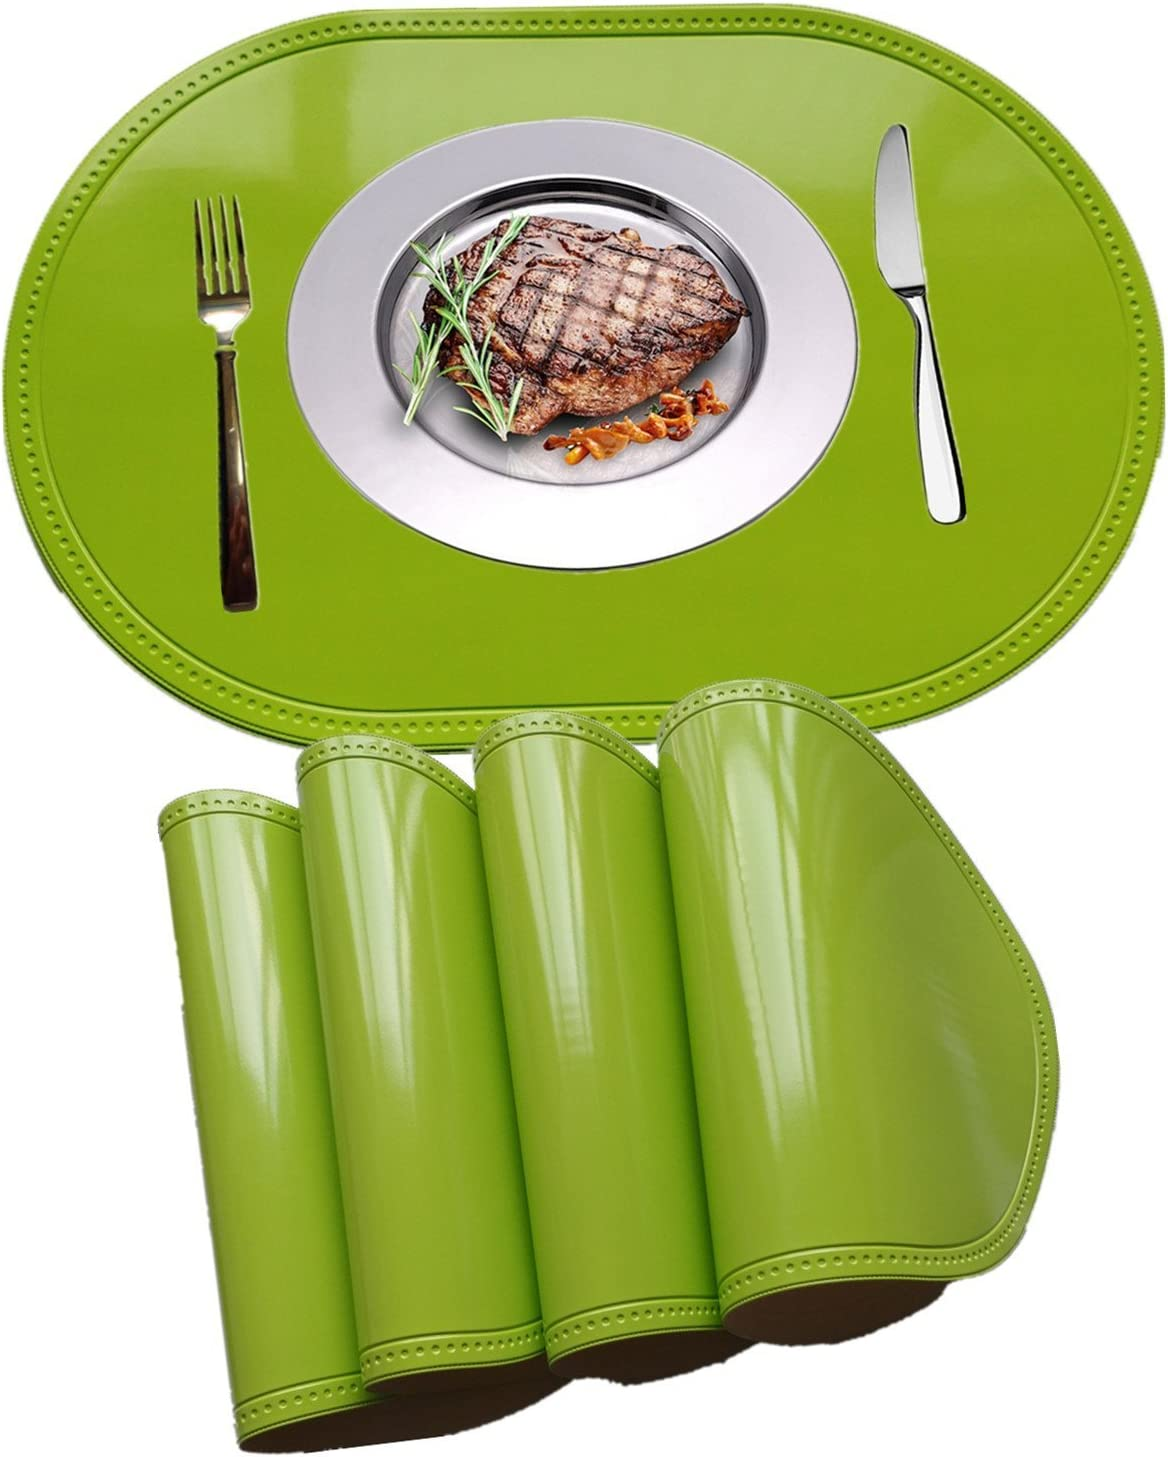 WANGCHAO Placemat, Plastic molding Faux Leather PVC Place mats Oval Smooth placemats Non-Slip Insulation Washable Table Mats (Green, Set of 8)